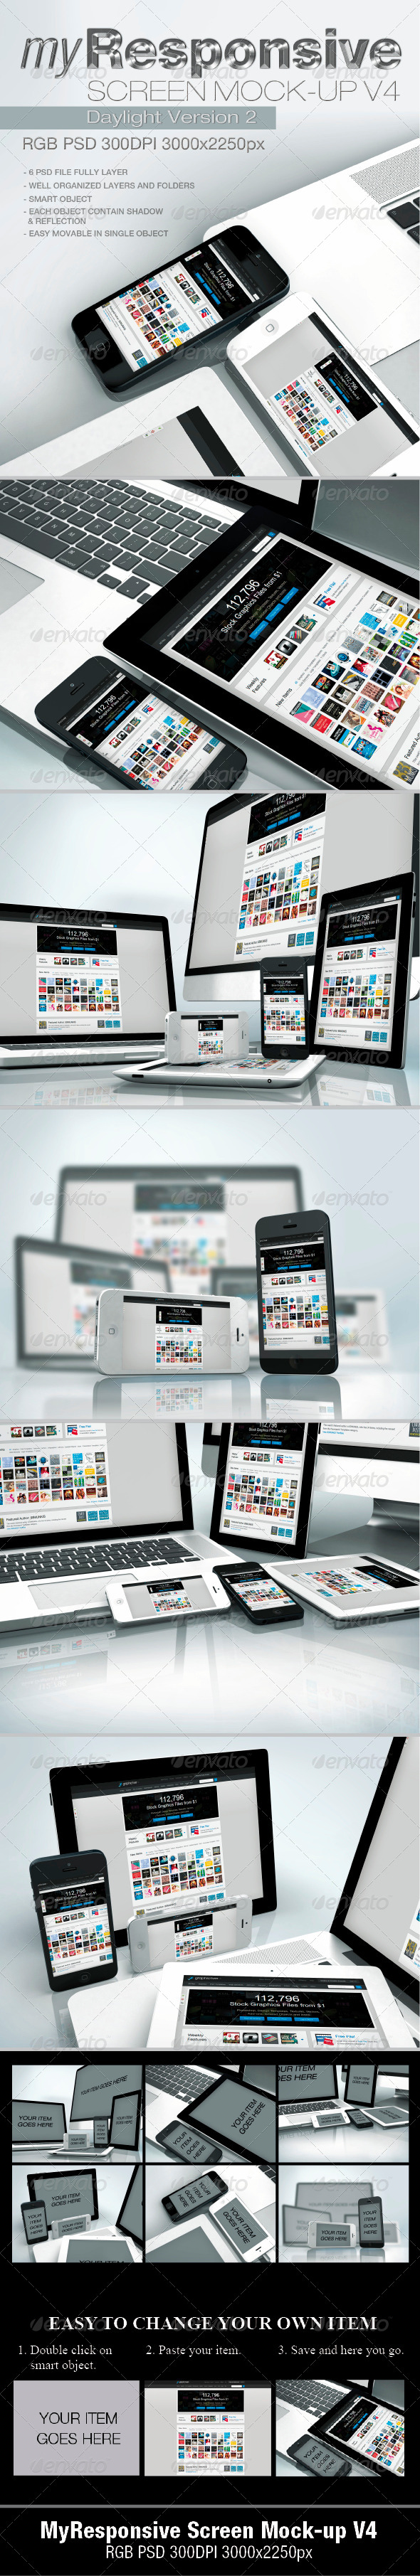 GraphicRiver myResponsive screen mock-up V4 4831763